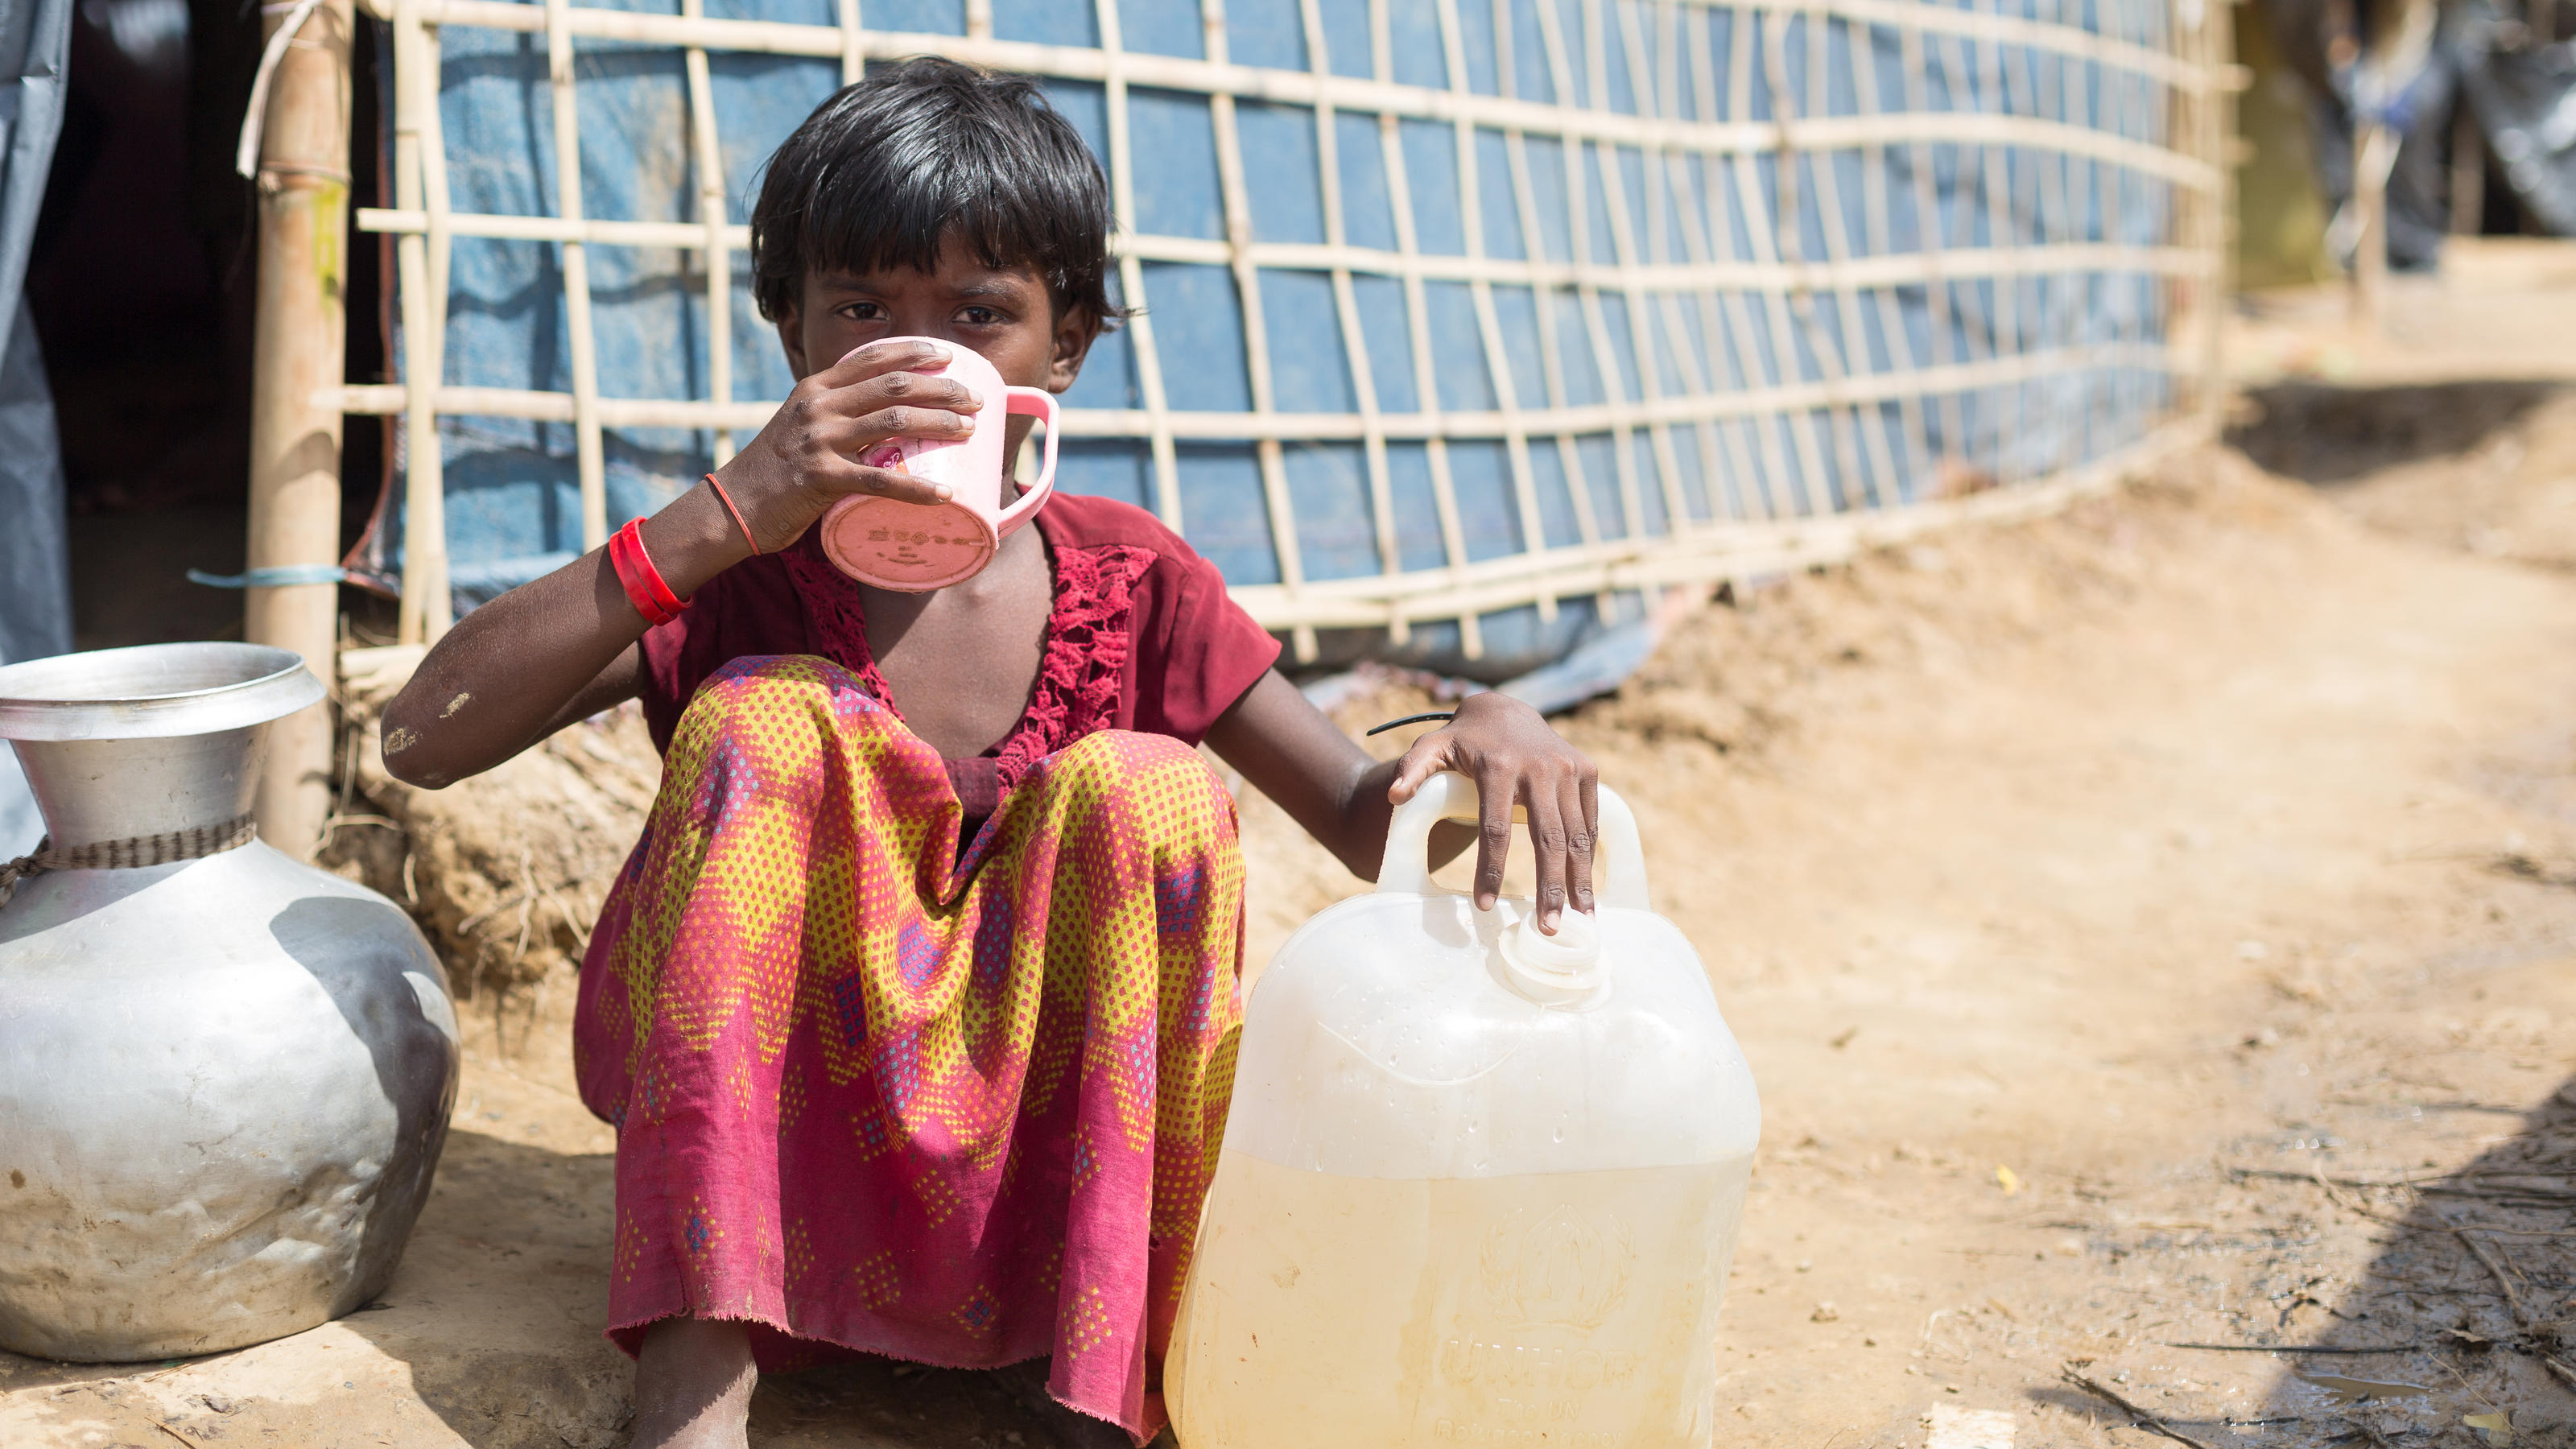 A young Rohingya girl takes a water break on her way uphill to her family's temporary shelter at the Kutupalong Camp in Cox's Bazar